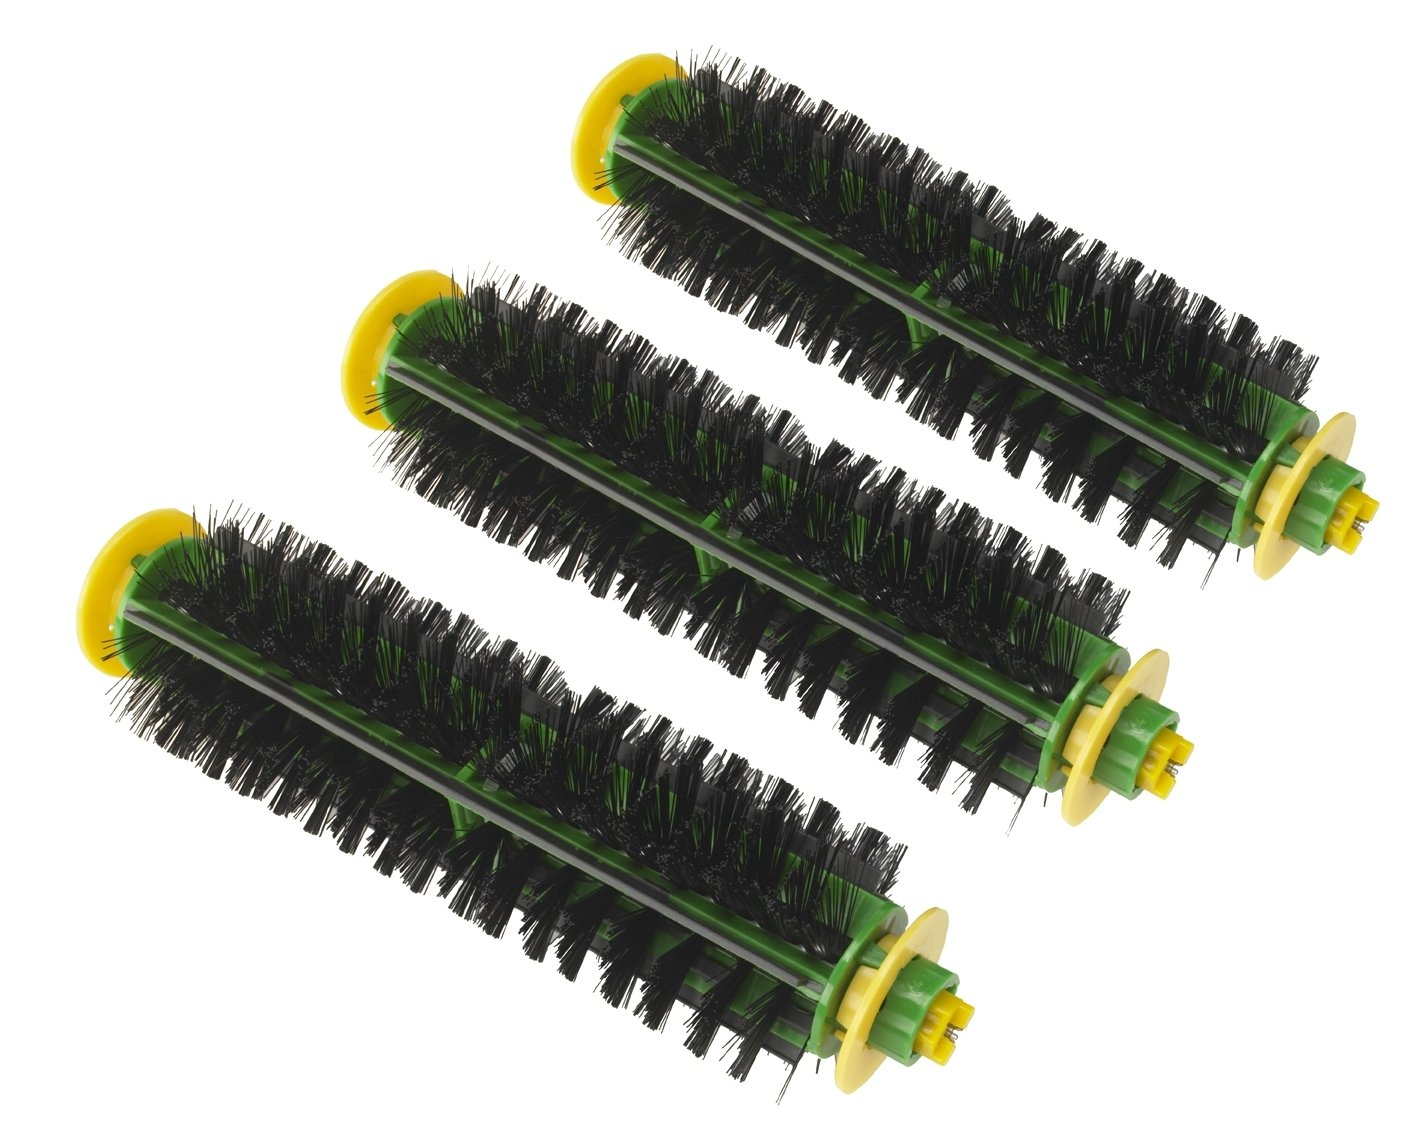 iRobot R3 500 Series Replacement Bristle Brushes, Pack of 3